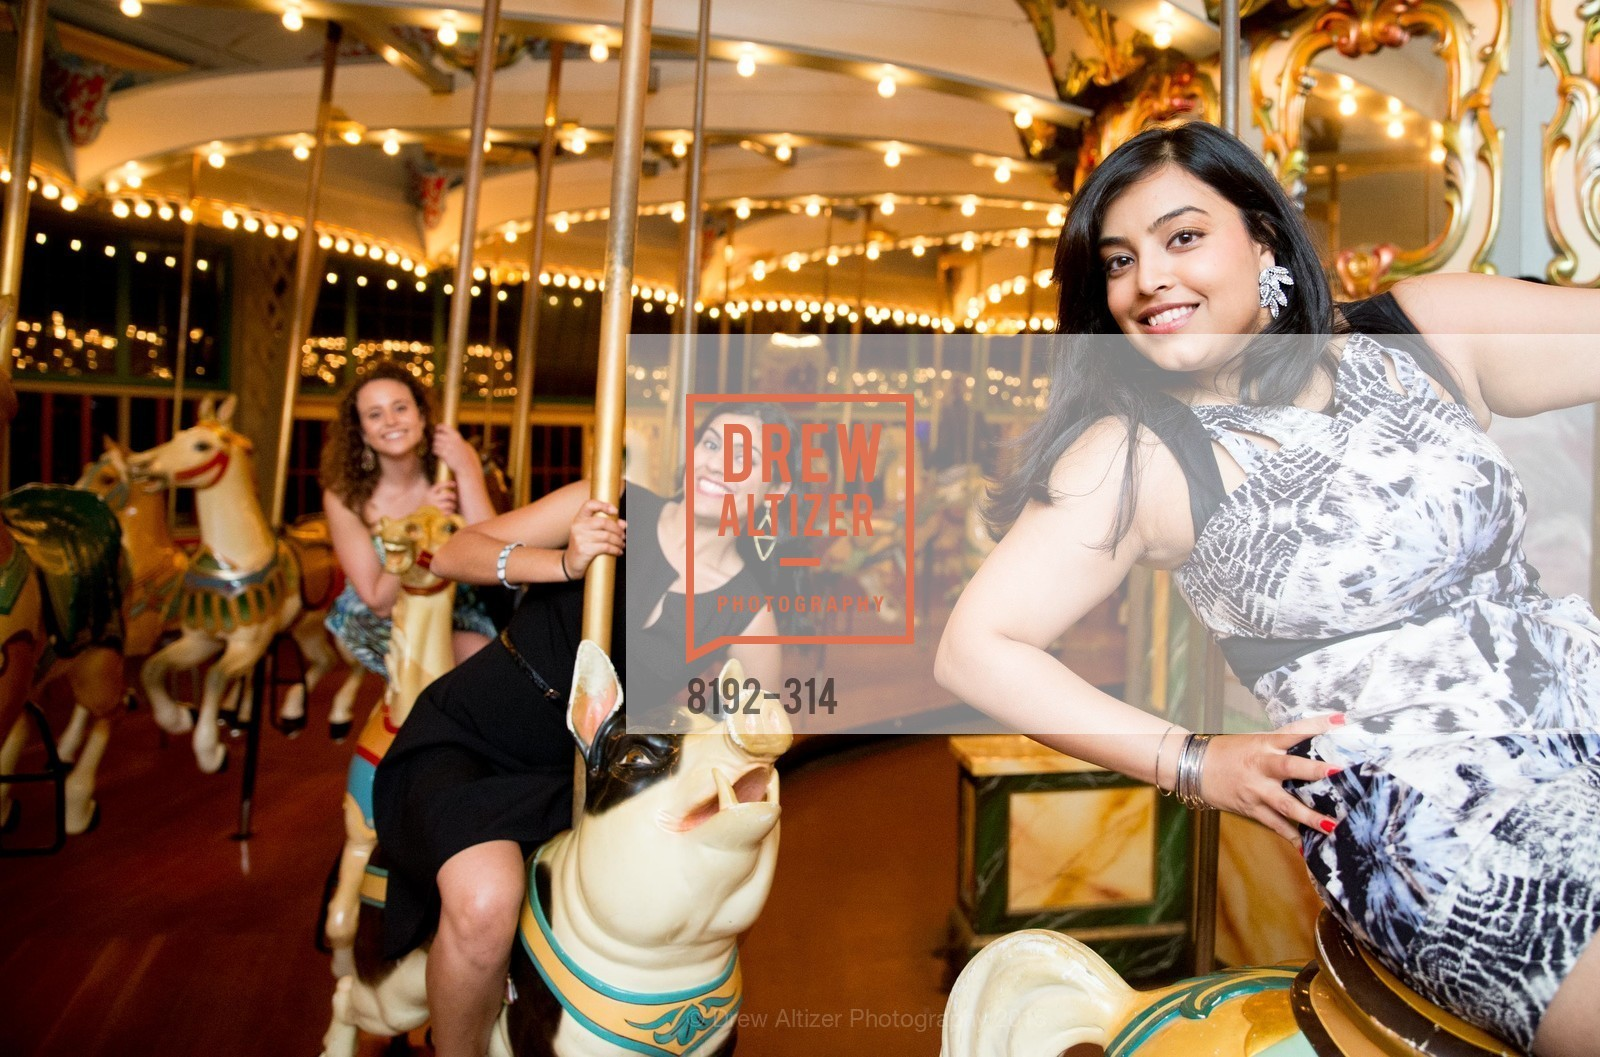 Allison Tompkins, Pujeeta Chowdhary, Paayal Gupta, San Francisco Zoo Fur Ball, San Francisco Zoo, September 25th, 2015,Drew Altizer, Drew Altizer Photography, full-service agency, private events, San Francisco photographer, photographer california